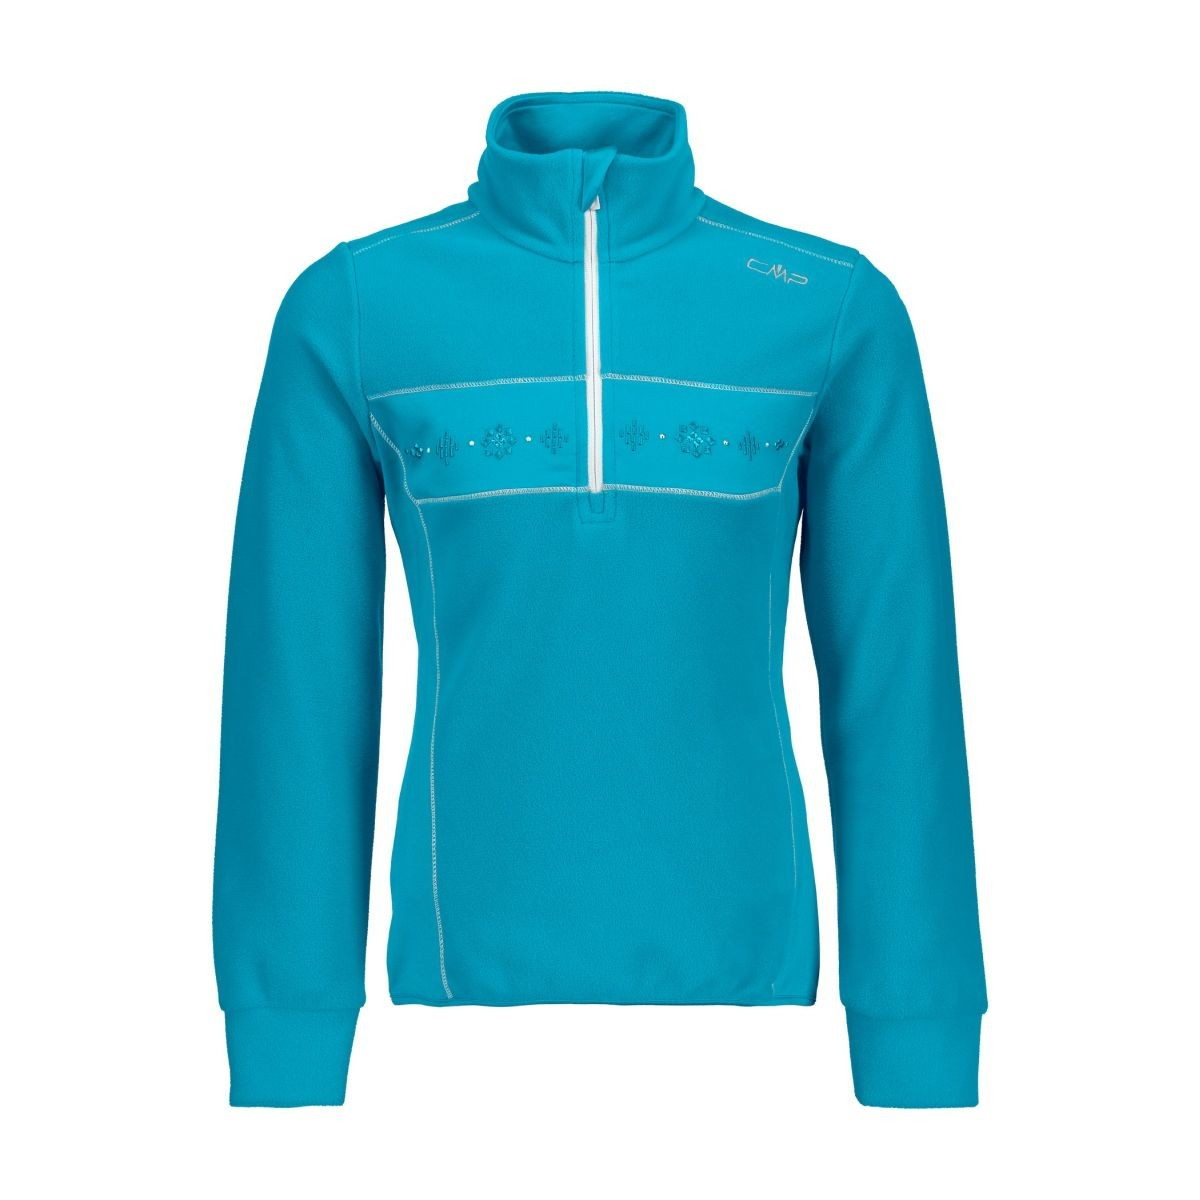 CAMPAGNOLO - GIRL SWEAT 38G1125 - GIRLS